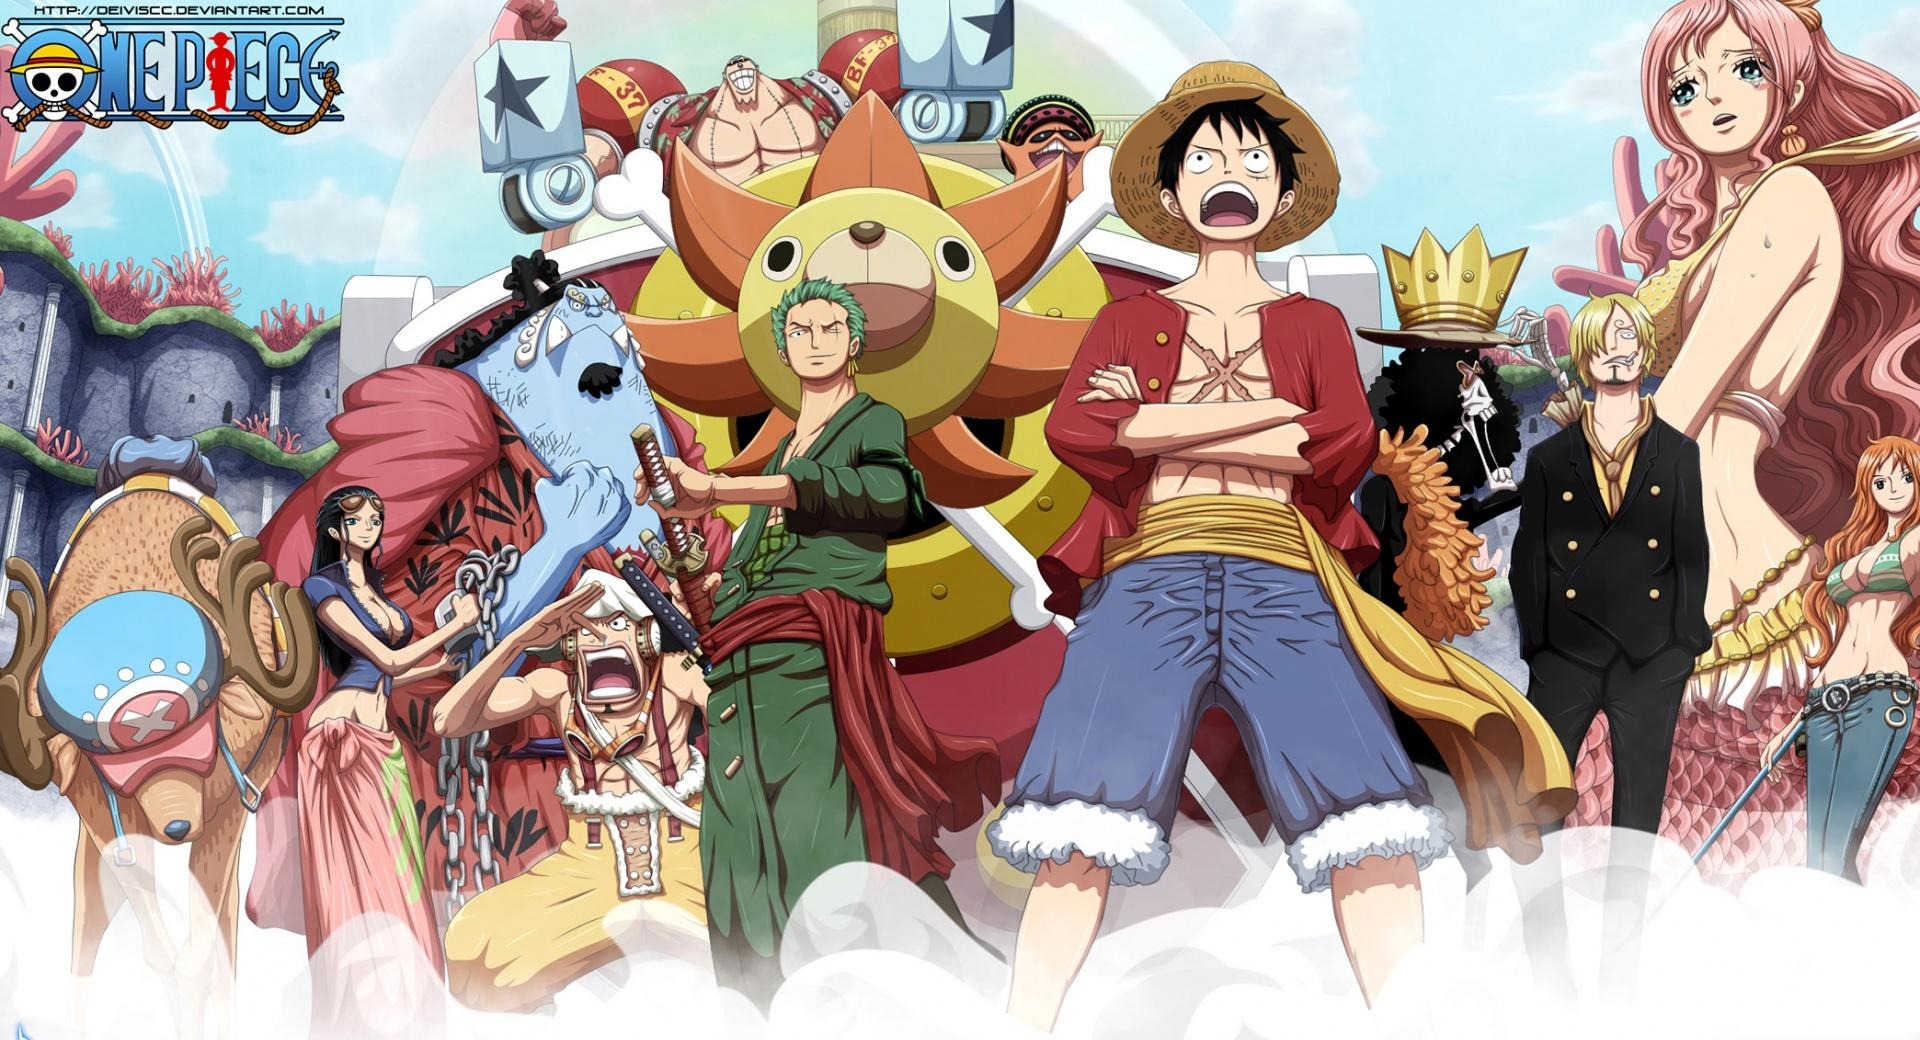 Mugiwara Pirates - Fishman Island wallpapers HD quality